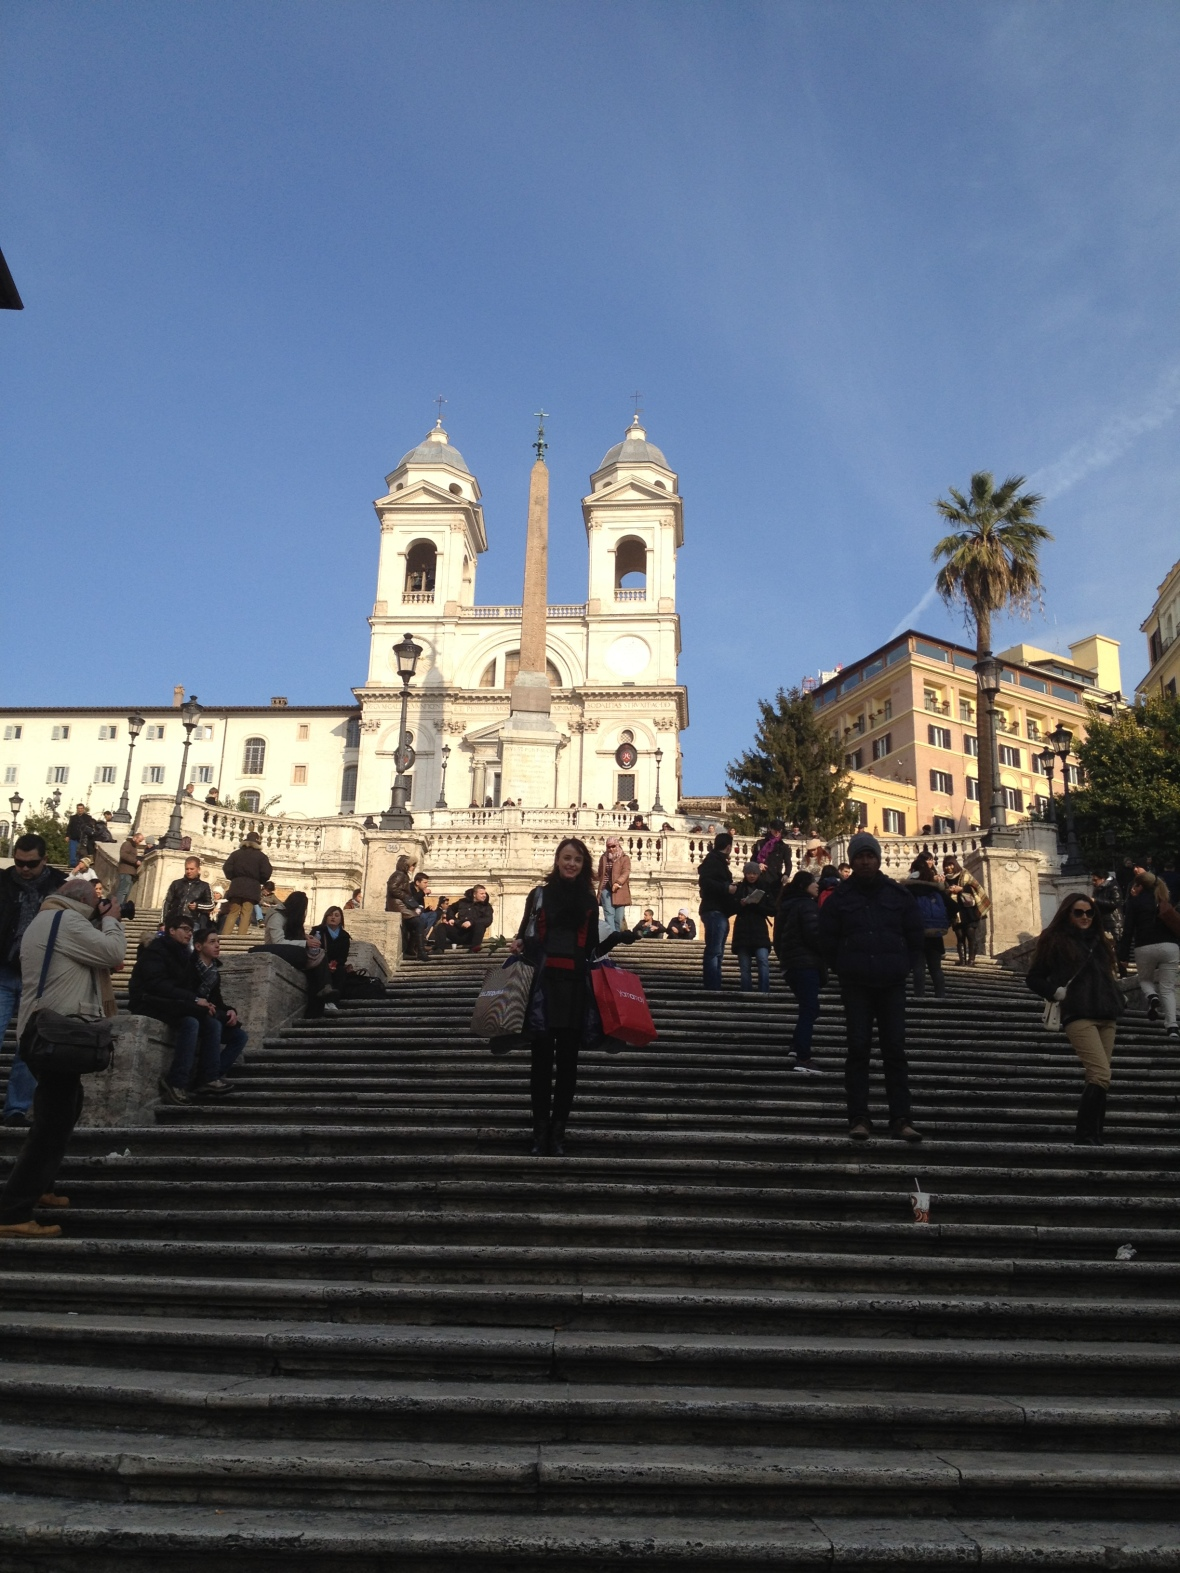 Holiday experiences to avoid, Rome Italy Spanish Steps linking Piazza di Spagna and Piazza Trinità dei Monti, Kristen Obaid